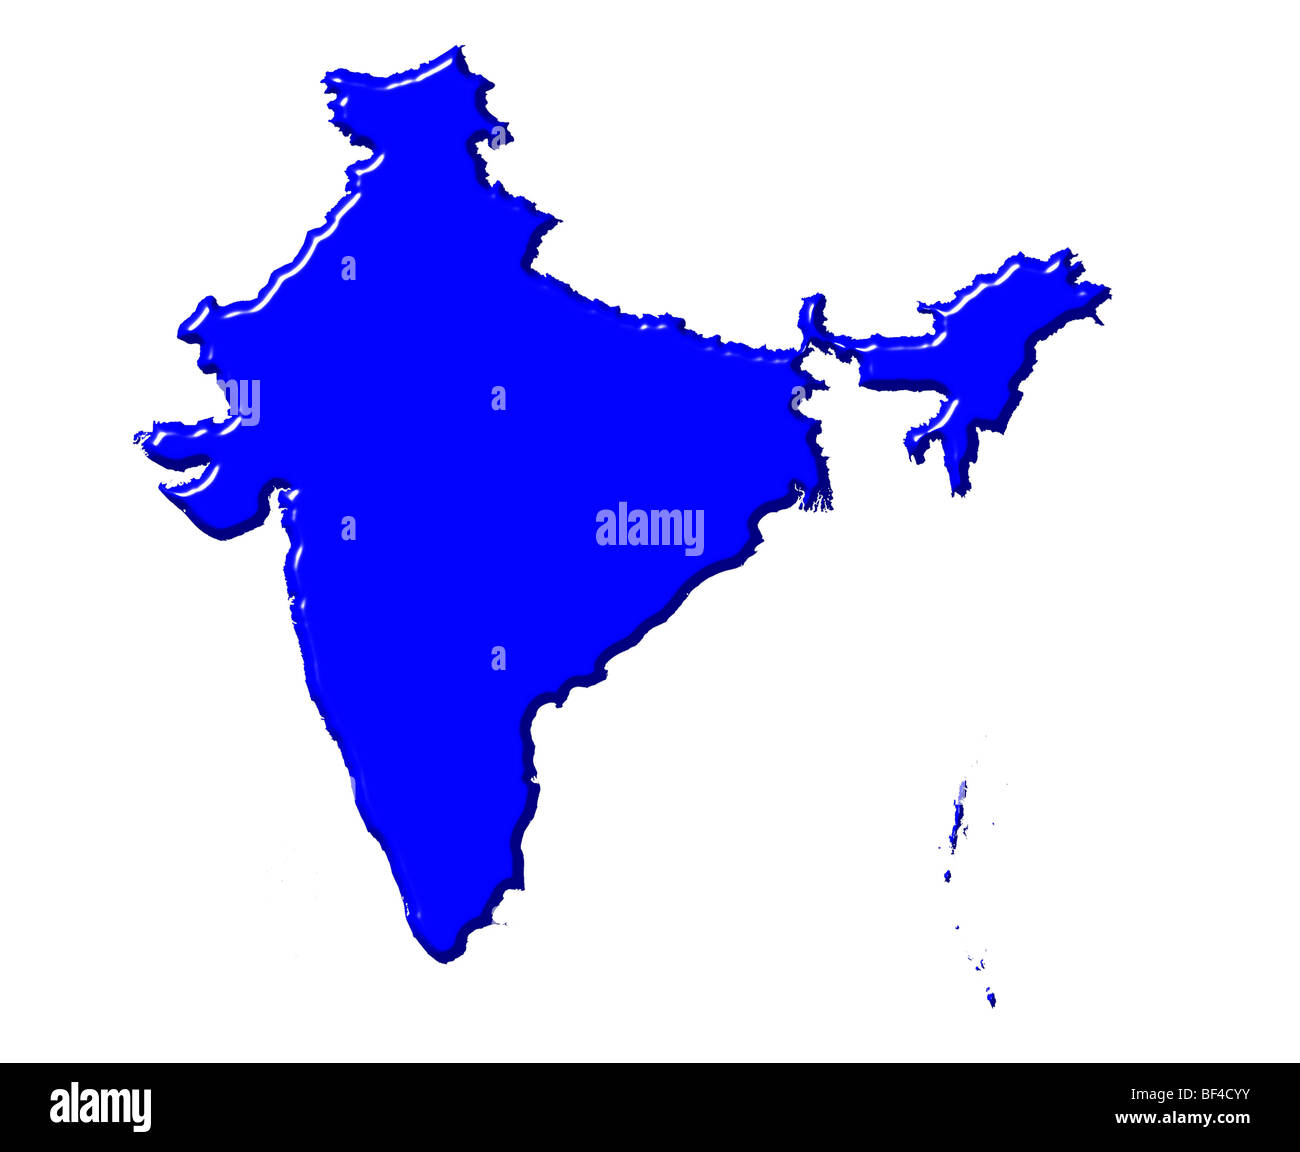 India D Map With National Color Stock Photo Alamy - World map in blue color